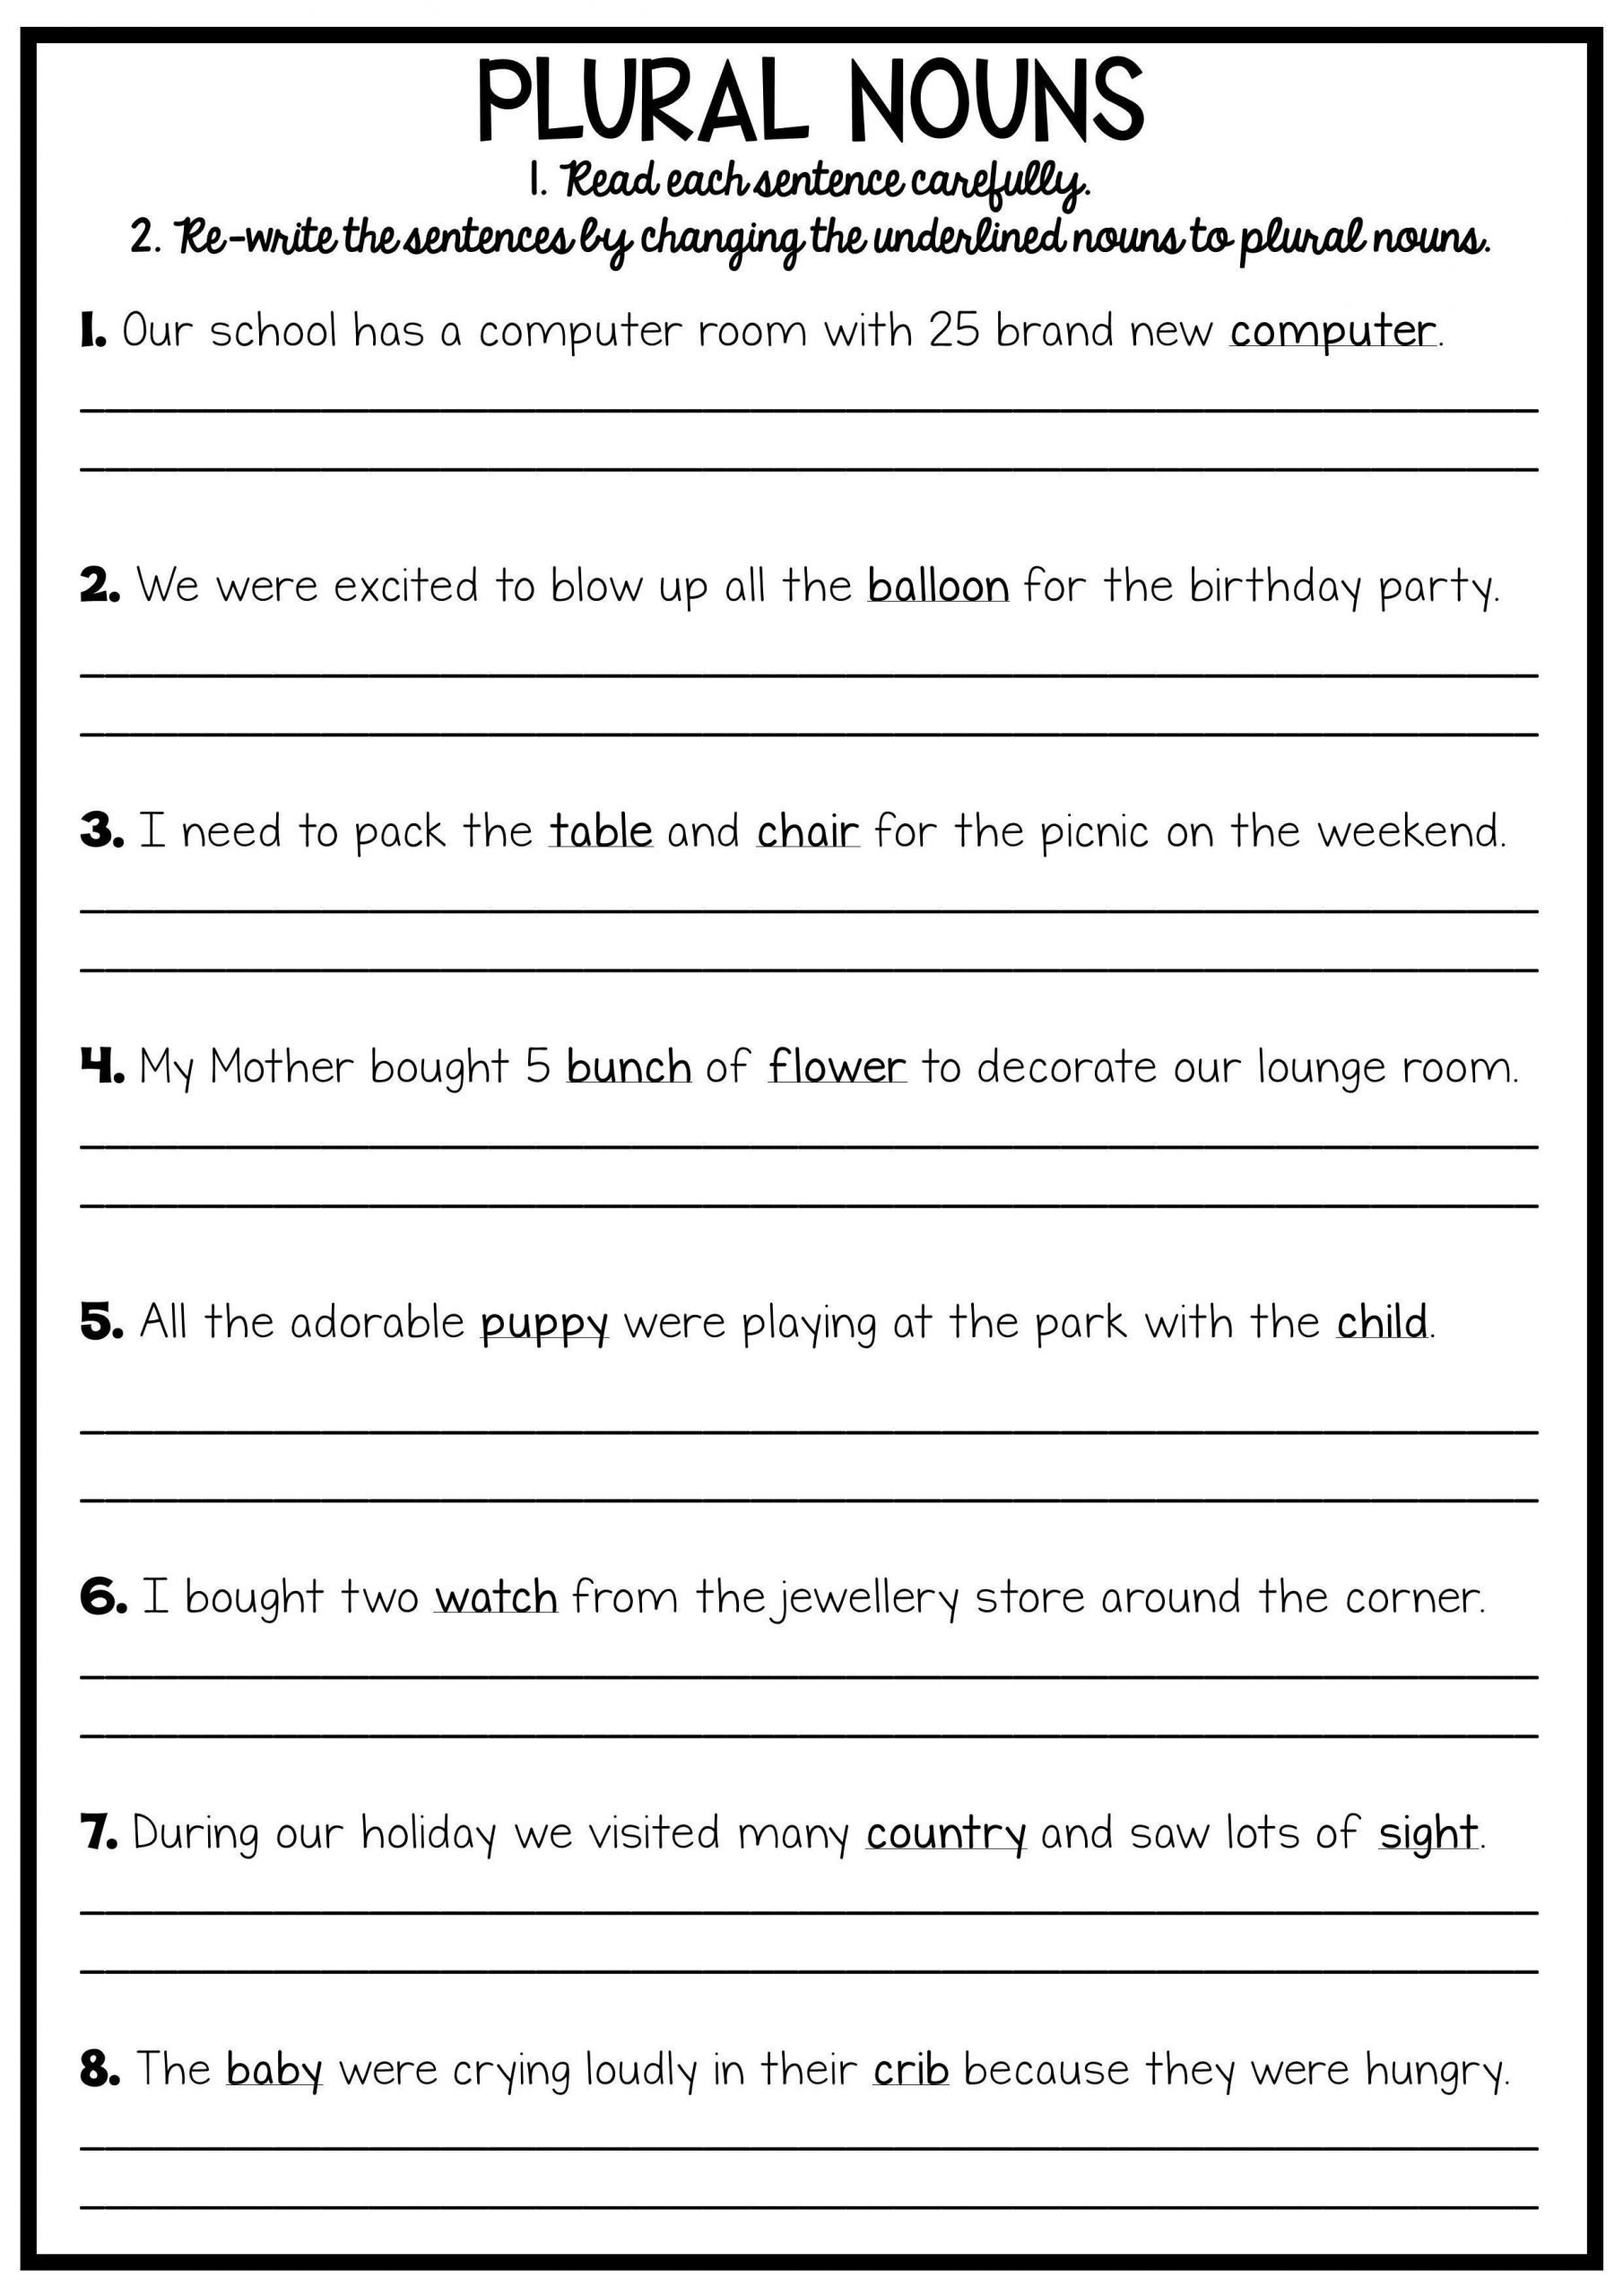 Grammar Worksheets 3rd Graders Legal Summarizing Worksheets 3rd Grade